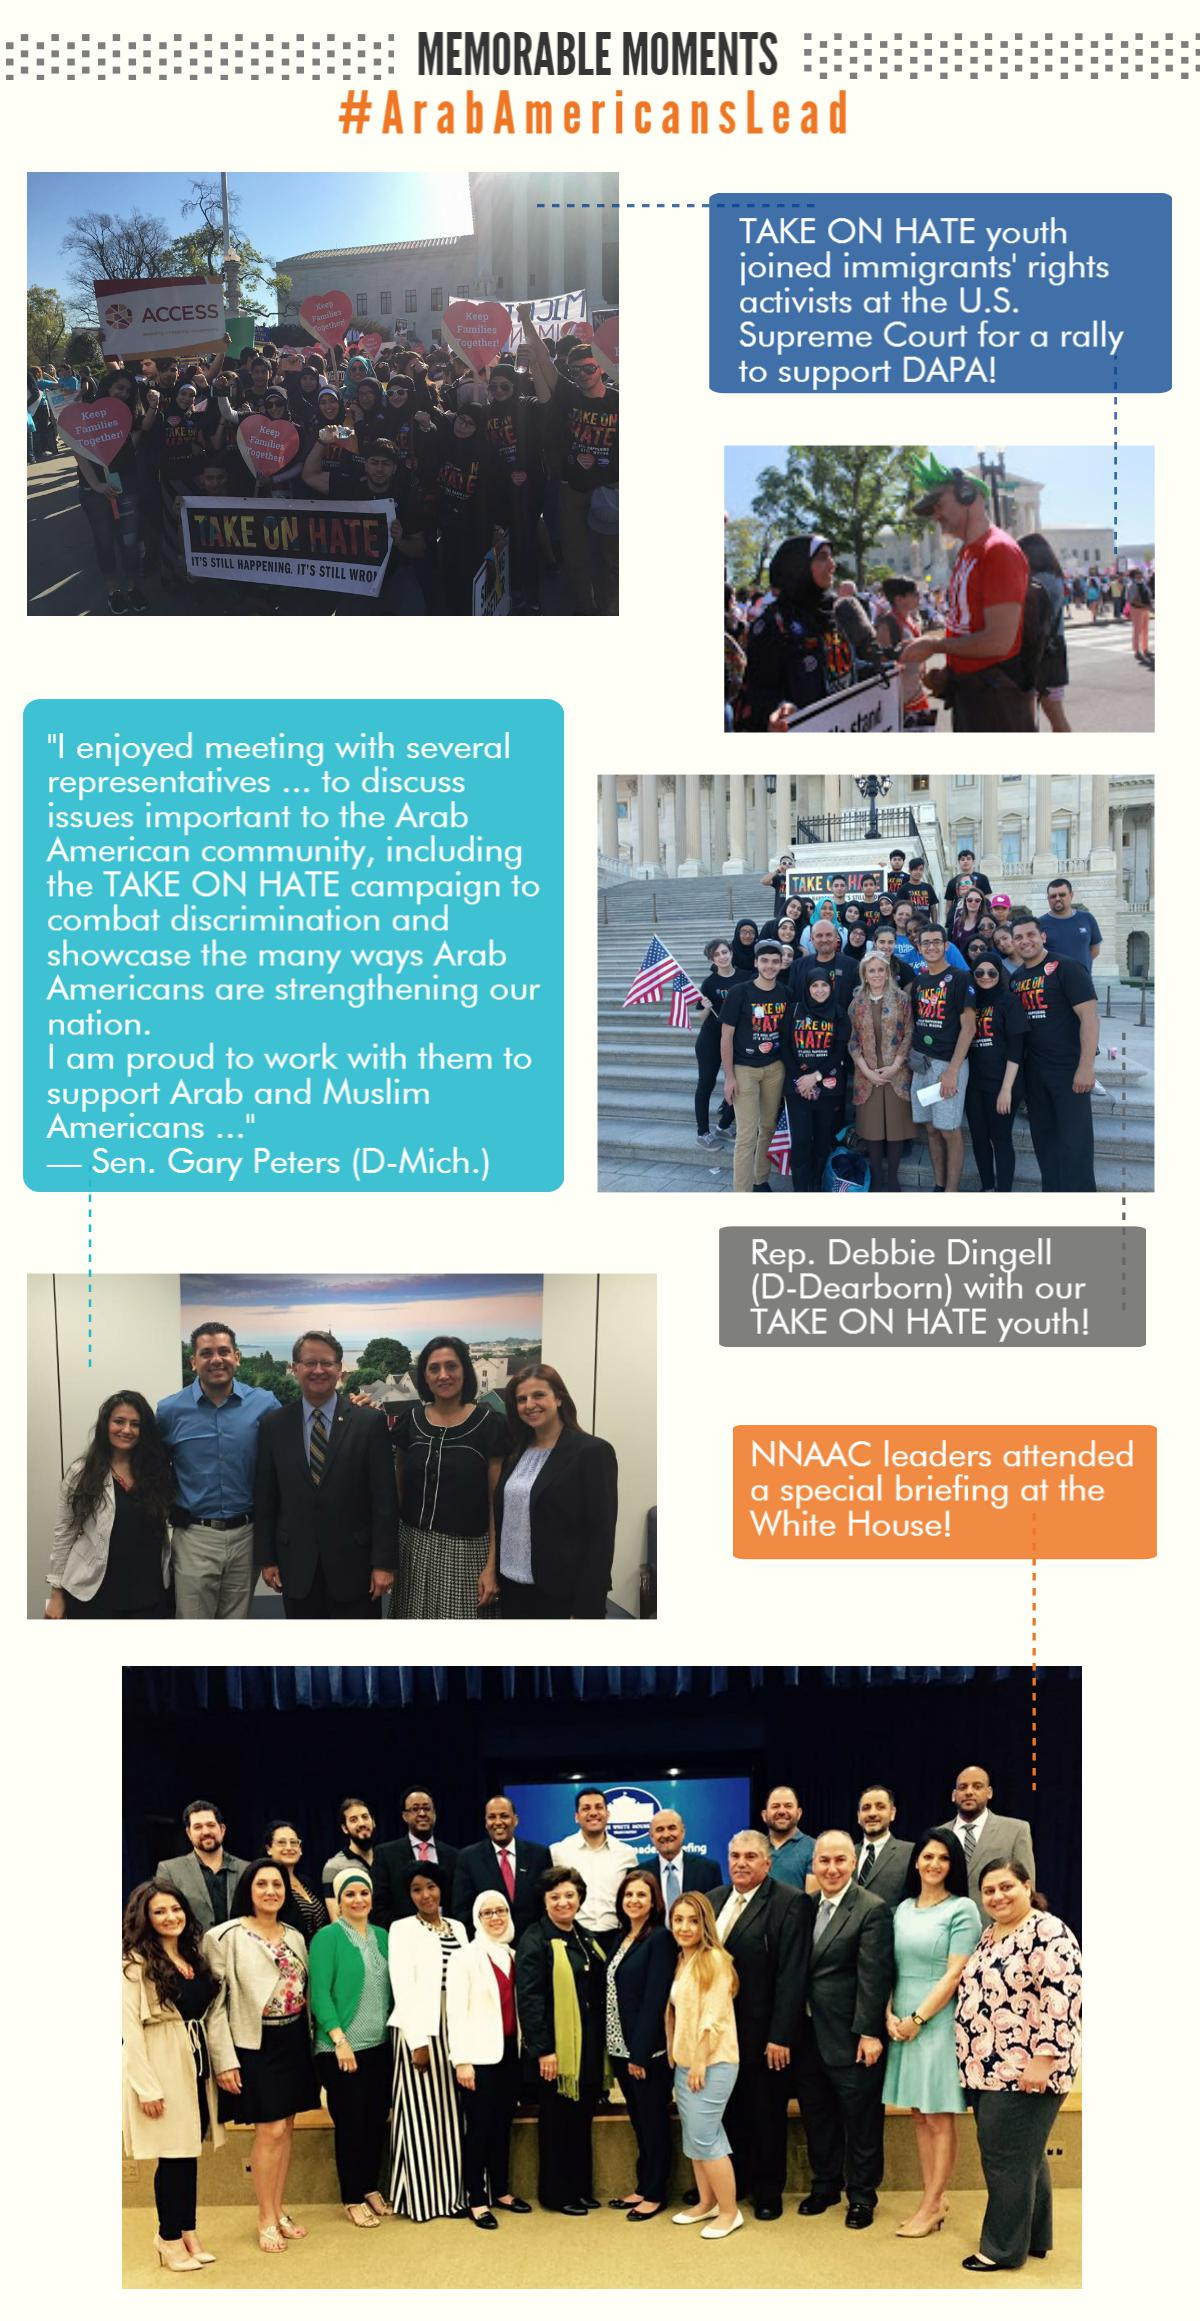 arab-american-leadership-days-2016-recap_block_2_4.jpeg